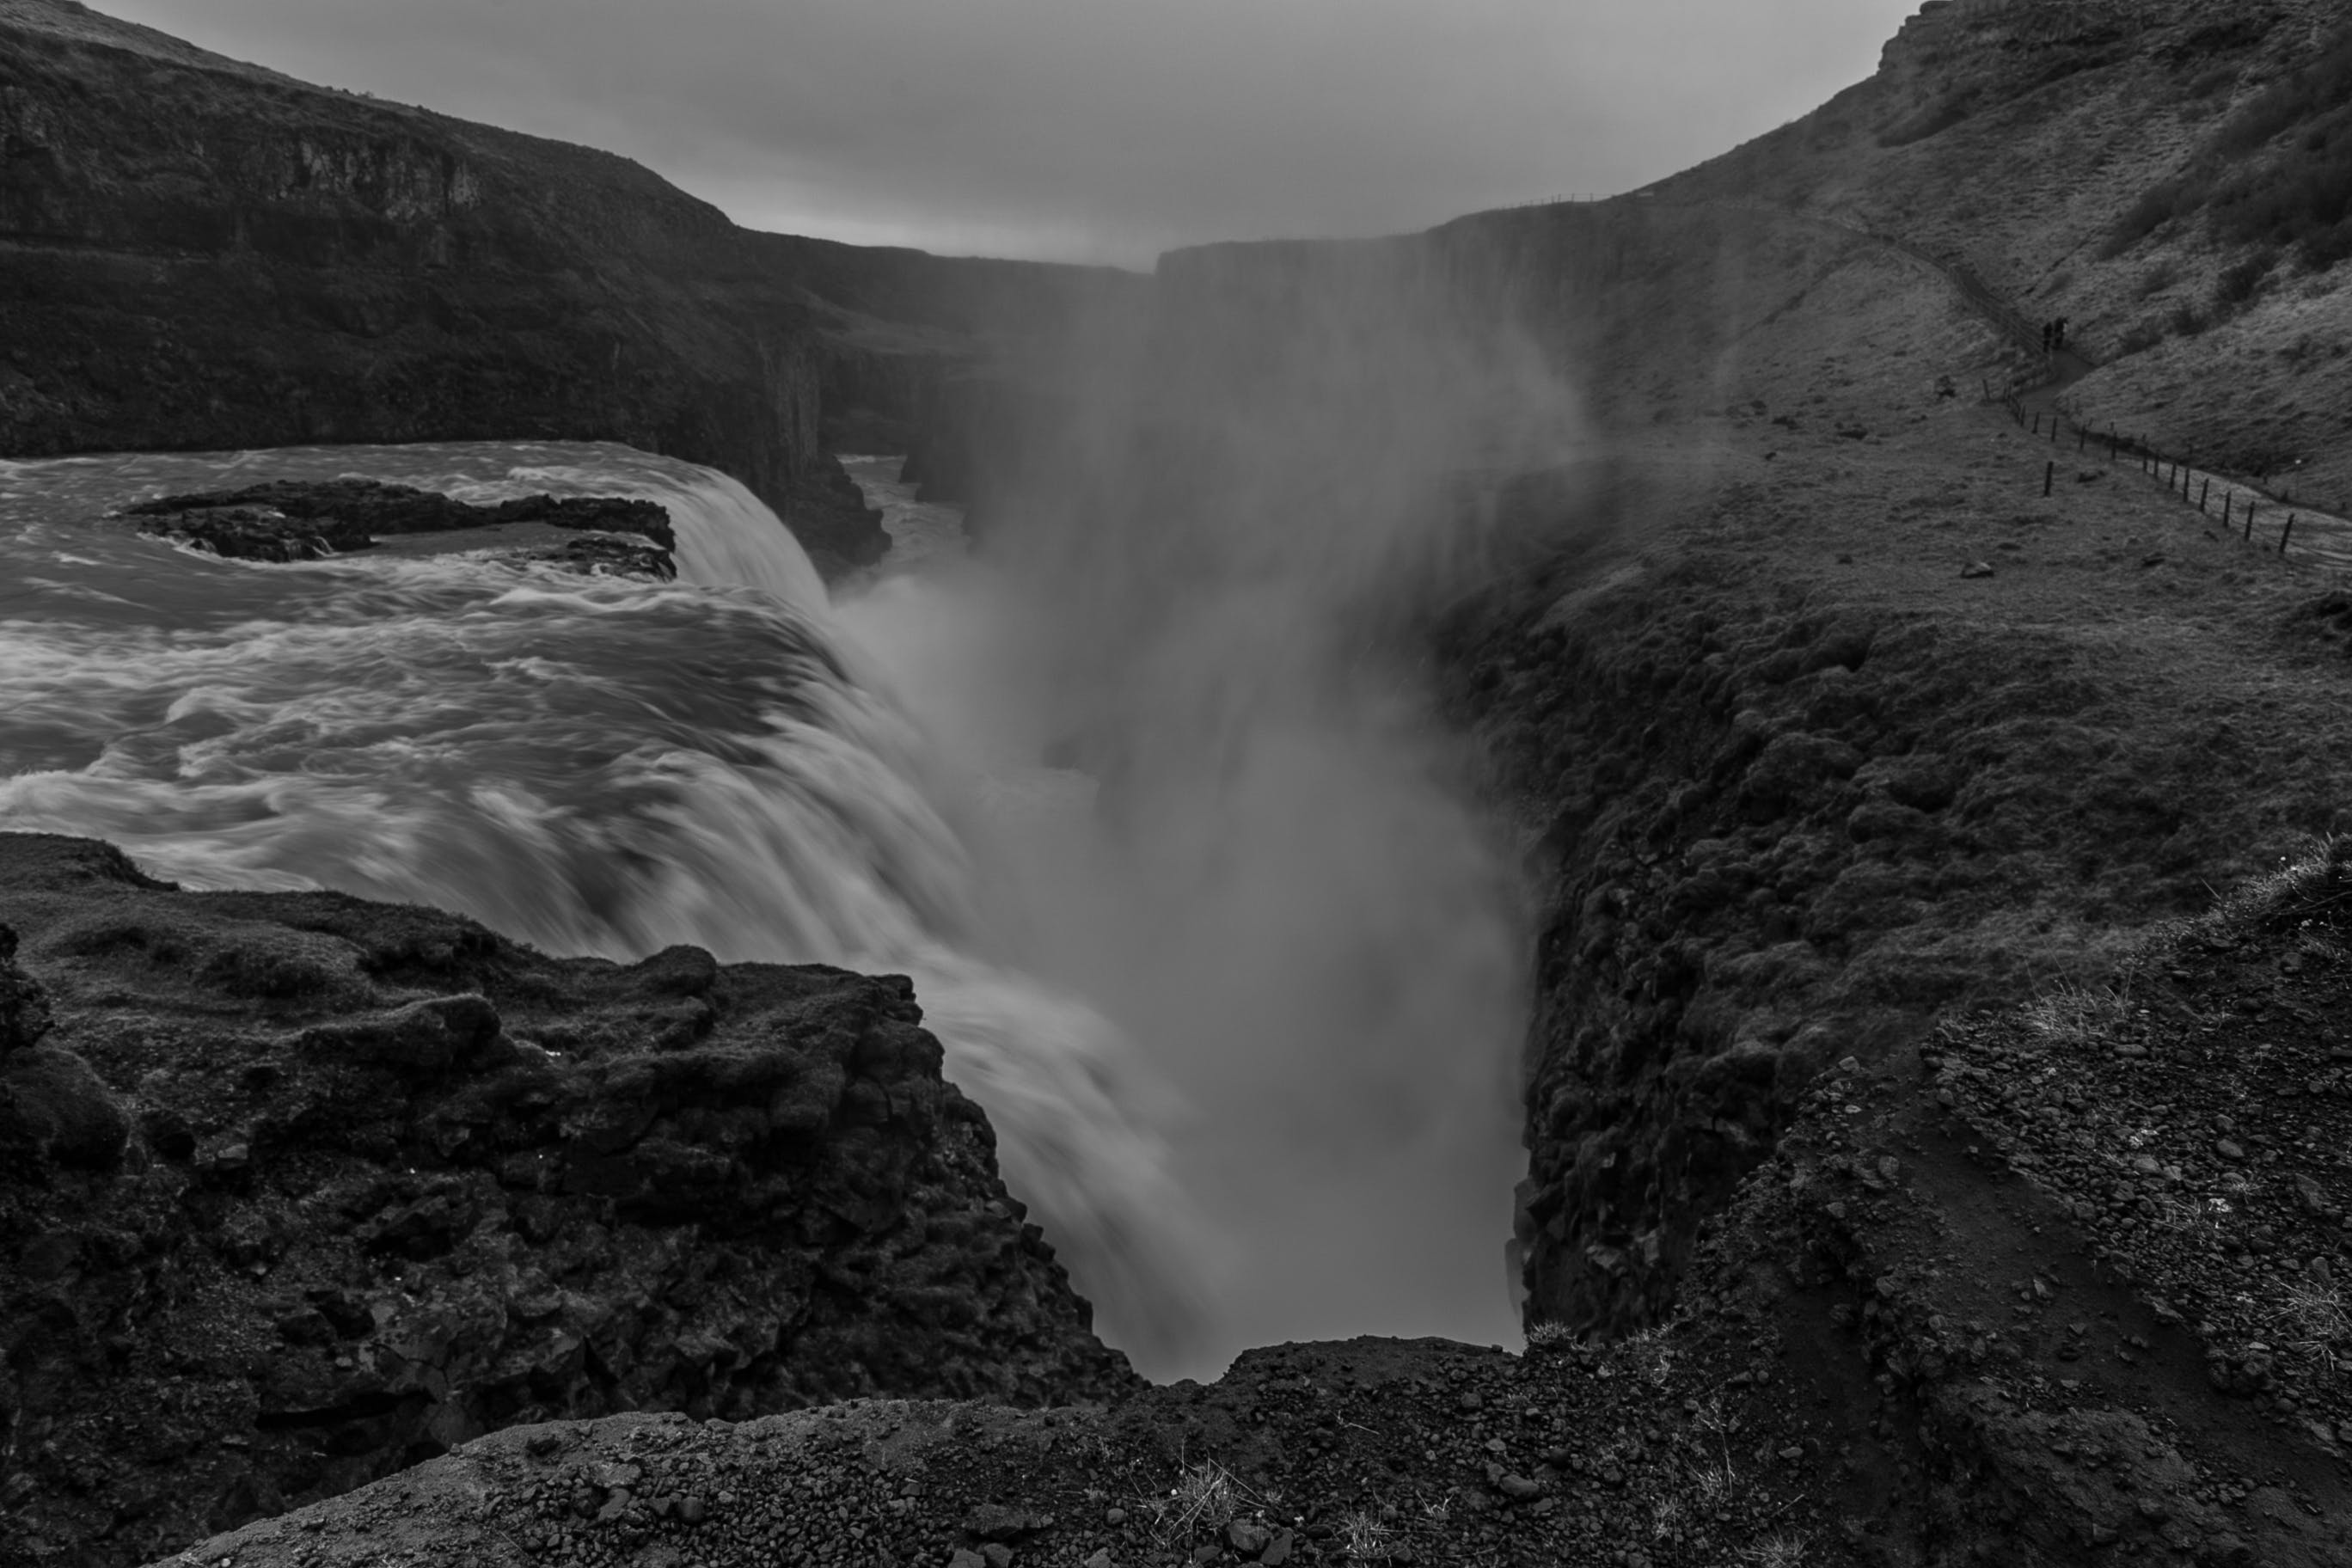 Graysclae Photography of Waterfalls